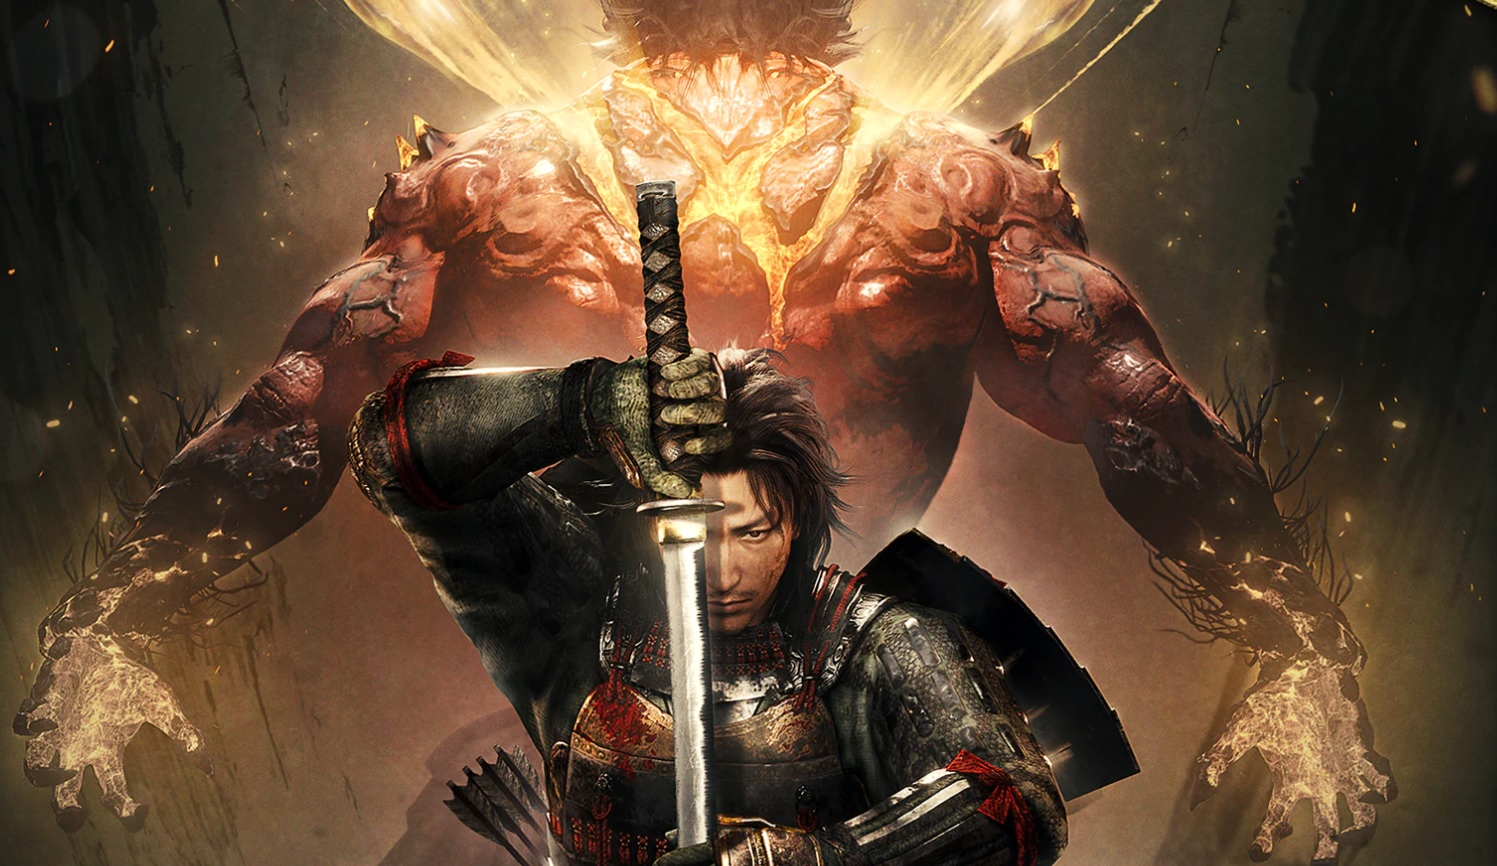 Team Ninja willl announce 'several new titles' this year, and Nioh is seemingly done screenshot